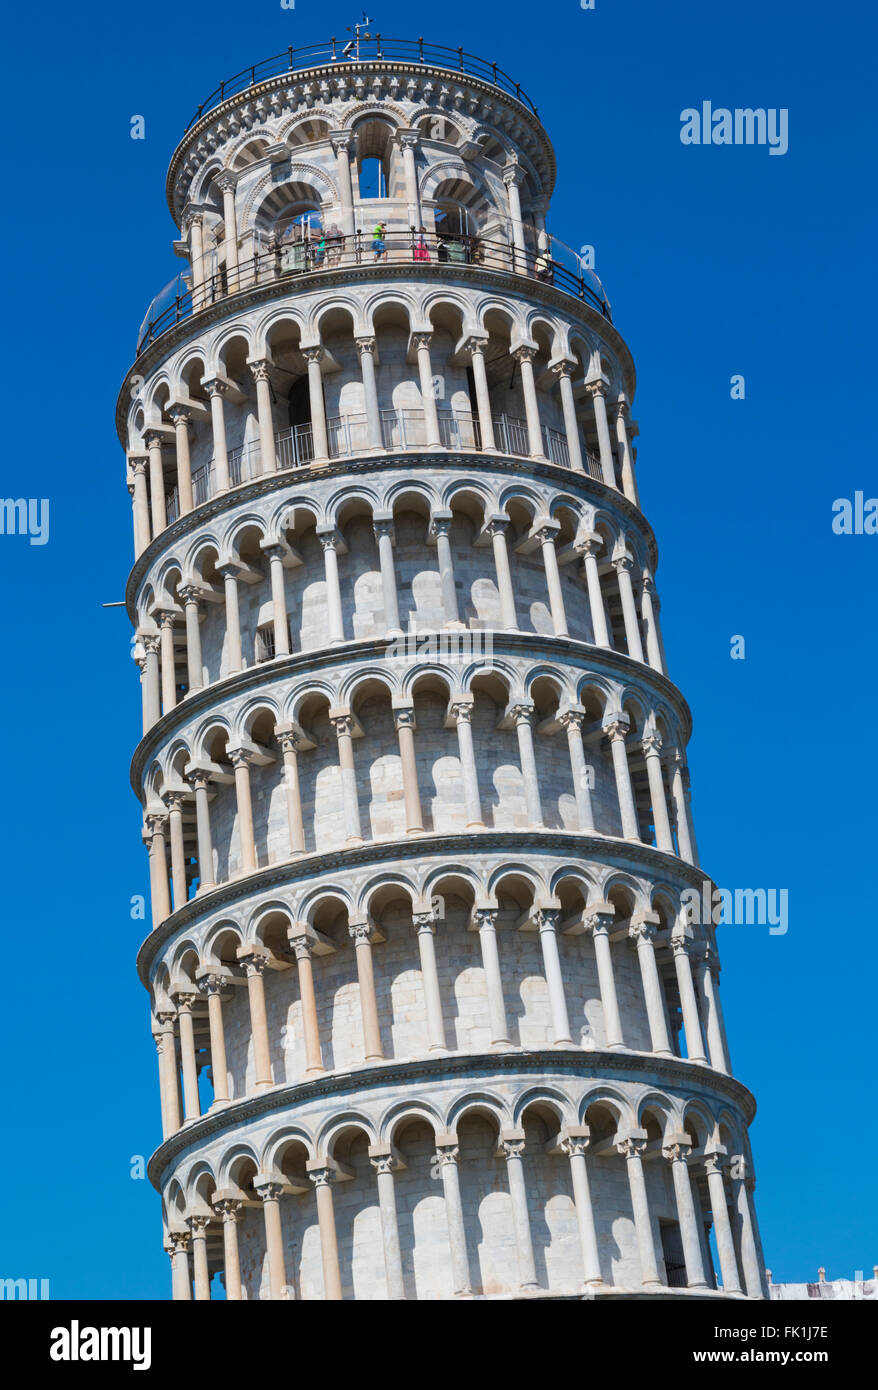 Pisa, Pisa Province, Tuscany, Italy.  The Leaning Tower of Pisa in the Campo dei Miracoli, or Field of Miracles. Stock Photo